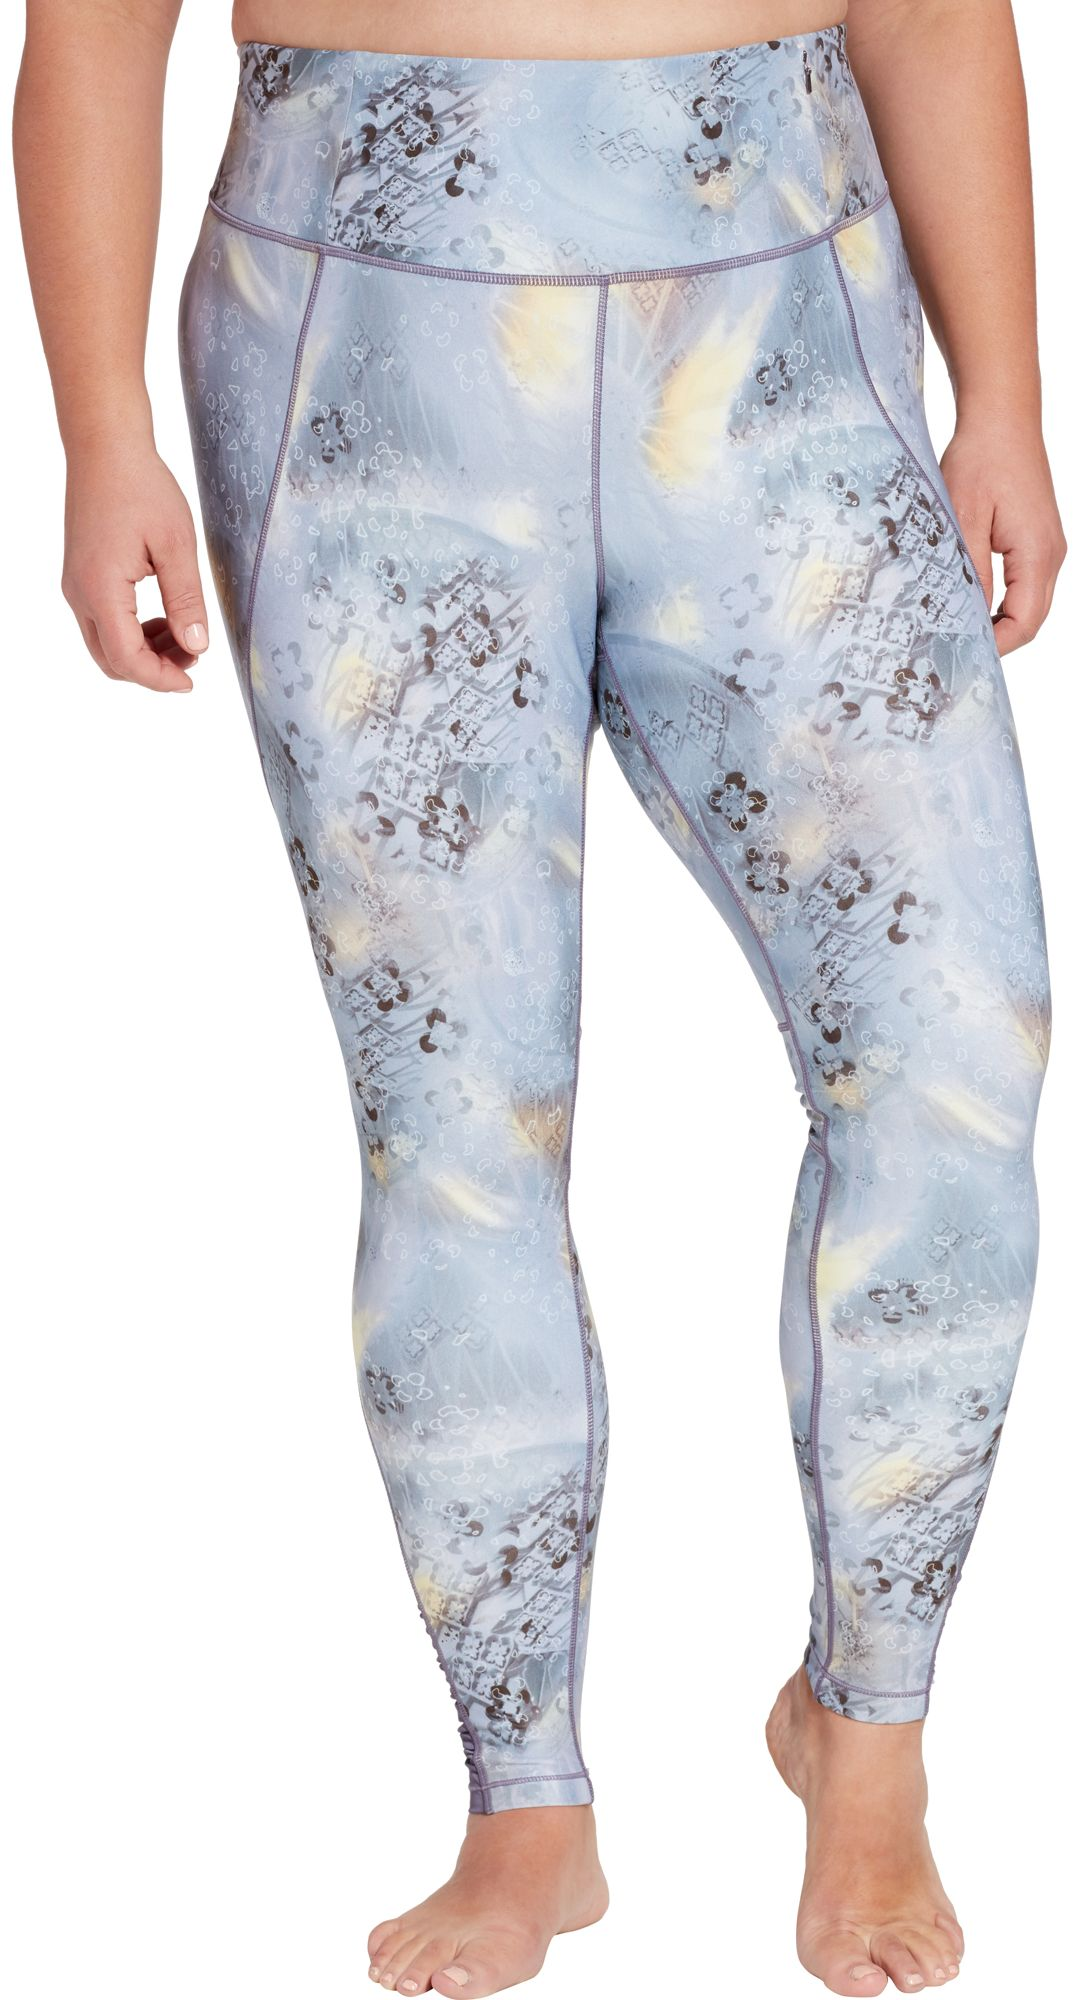 d0aaa47db9e1 CALIA by Carrie Underwood Women's Plus Size Essential Printed High Waist  Ruched Leggings. noImageFound. Previous. 1